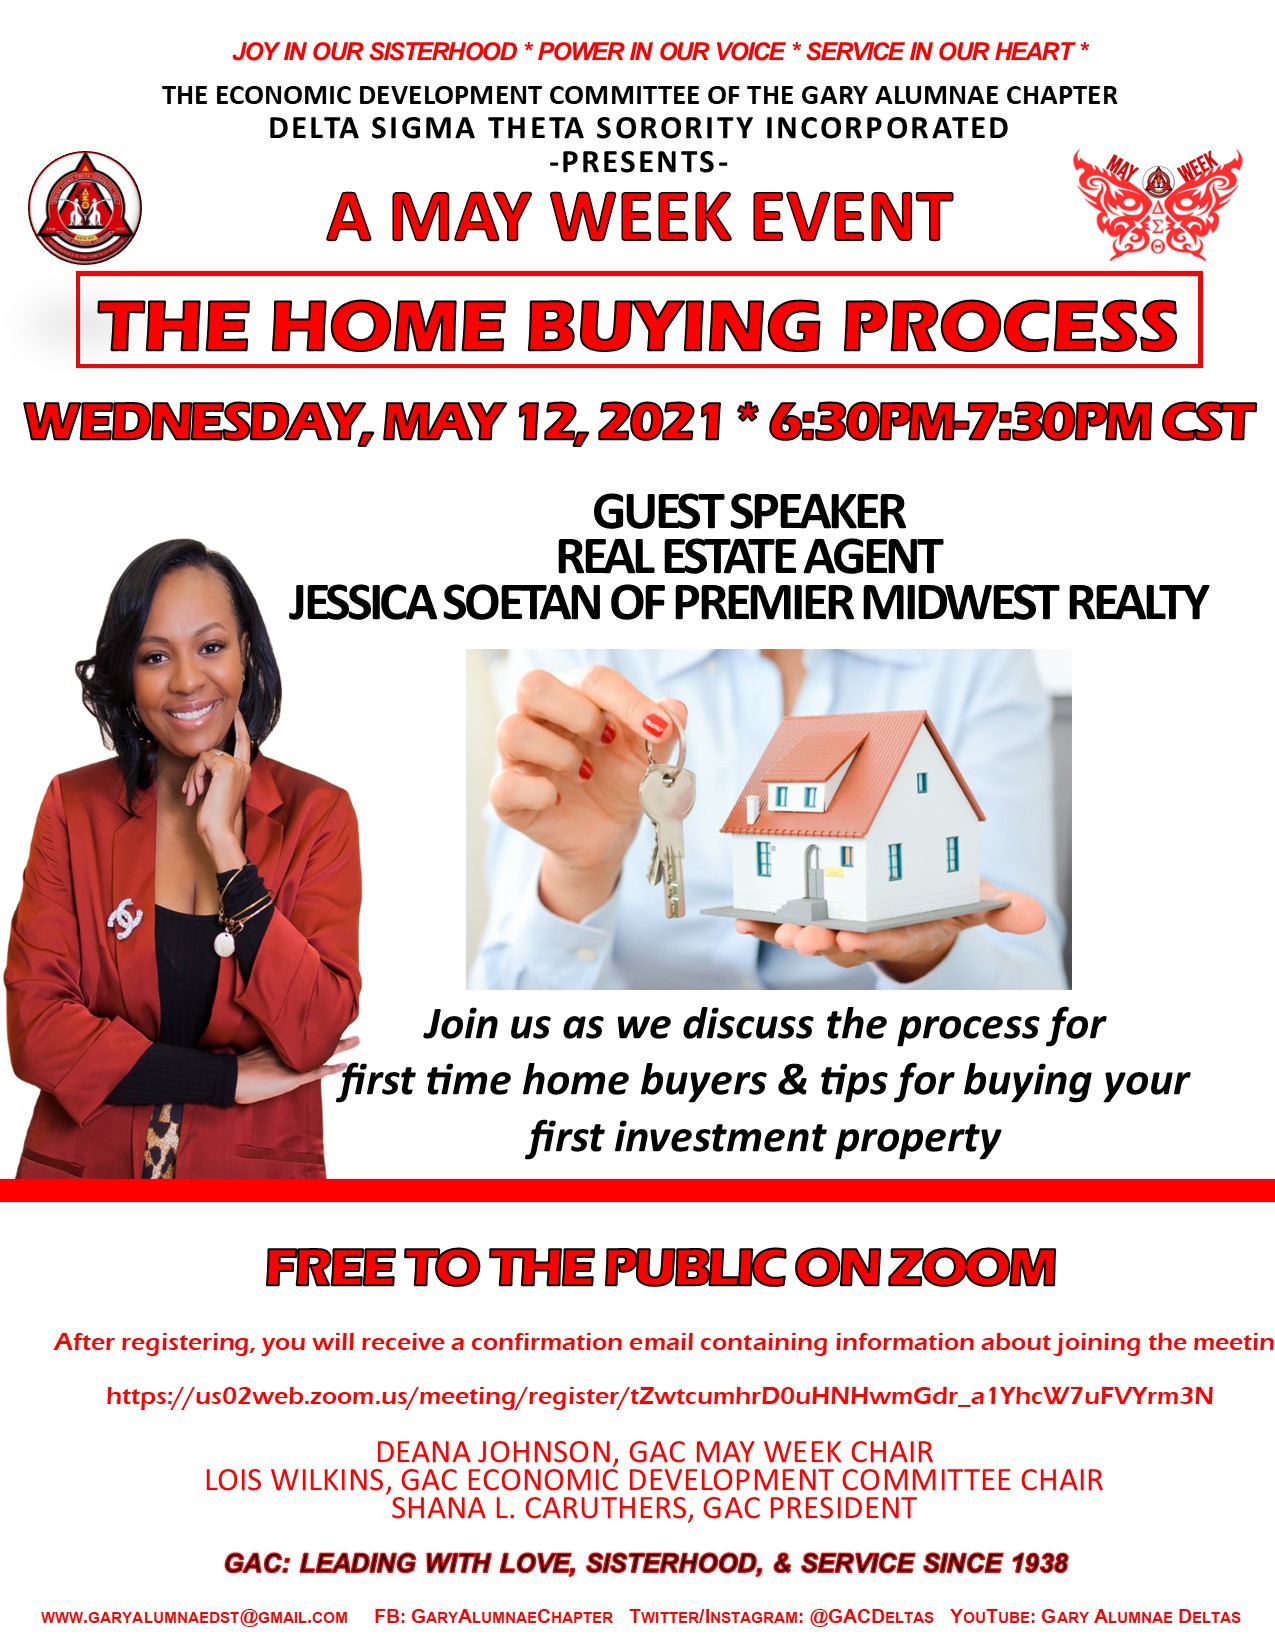 MAY WEEK- THE HOME BUYING PROCESS (WEDNESDAY) CLICK ON THE FLYER